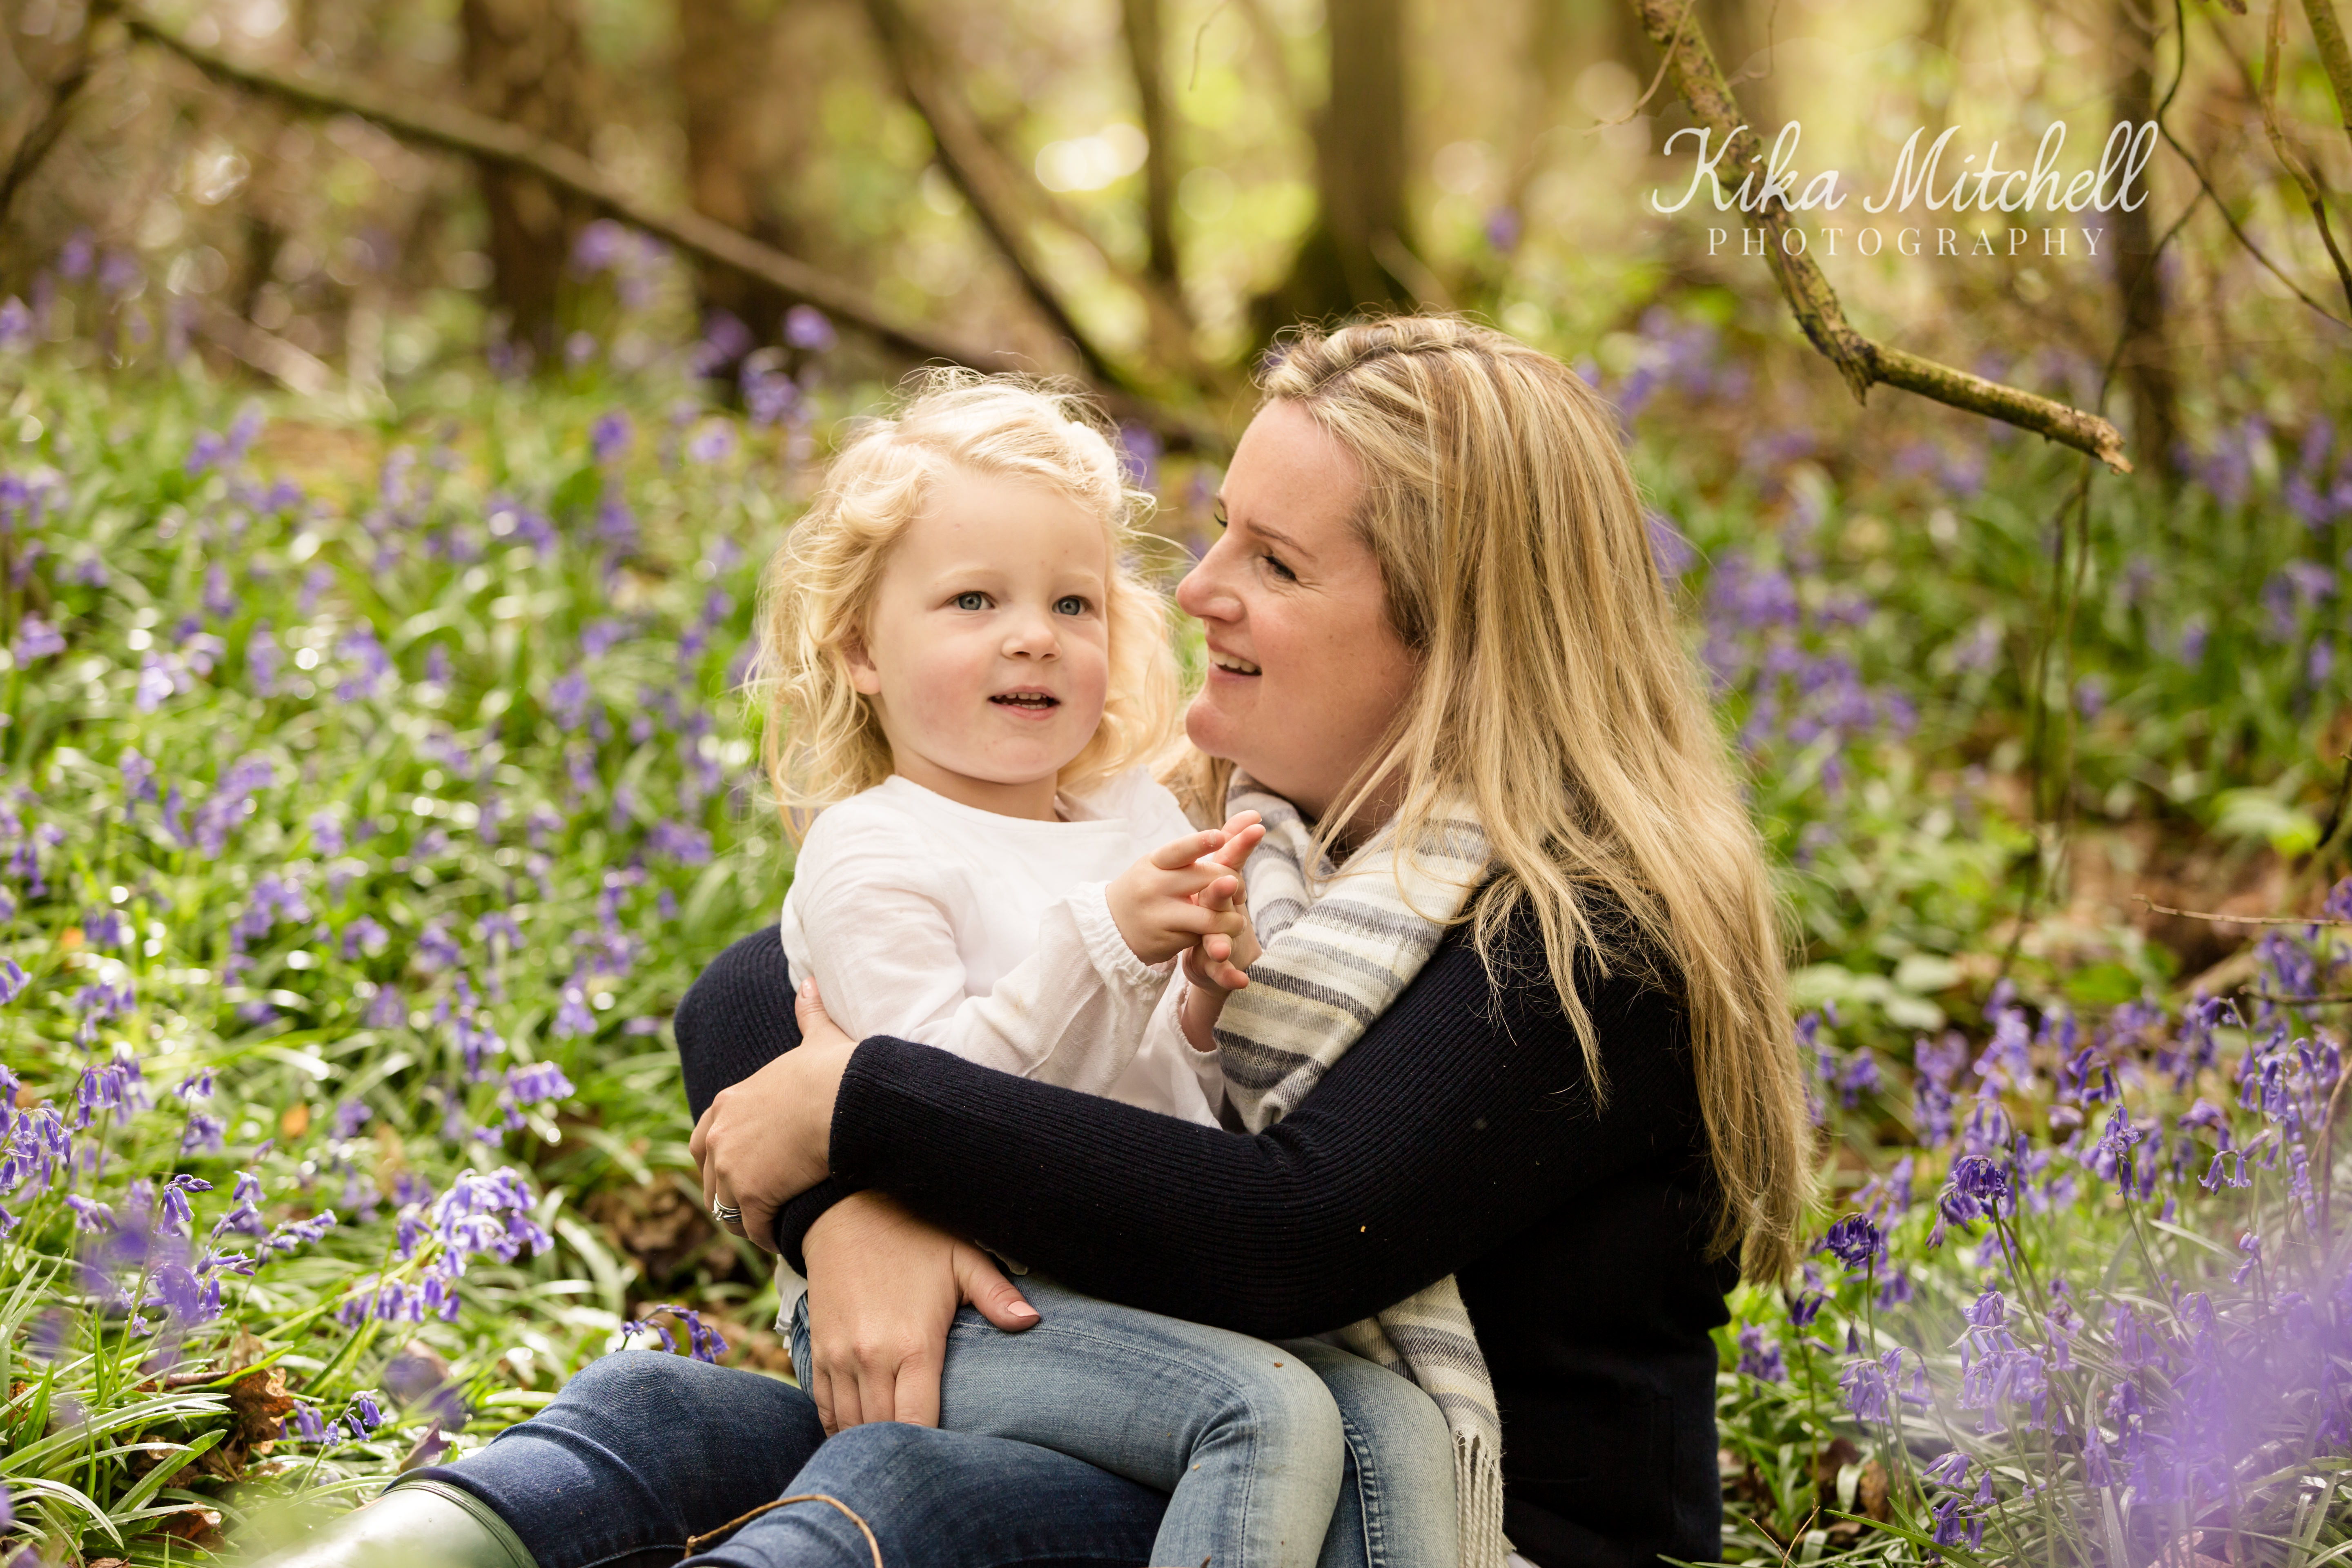 Bluebell family portrait by Chelmsford photographer Kika Mitchell photography